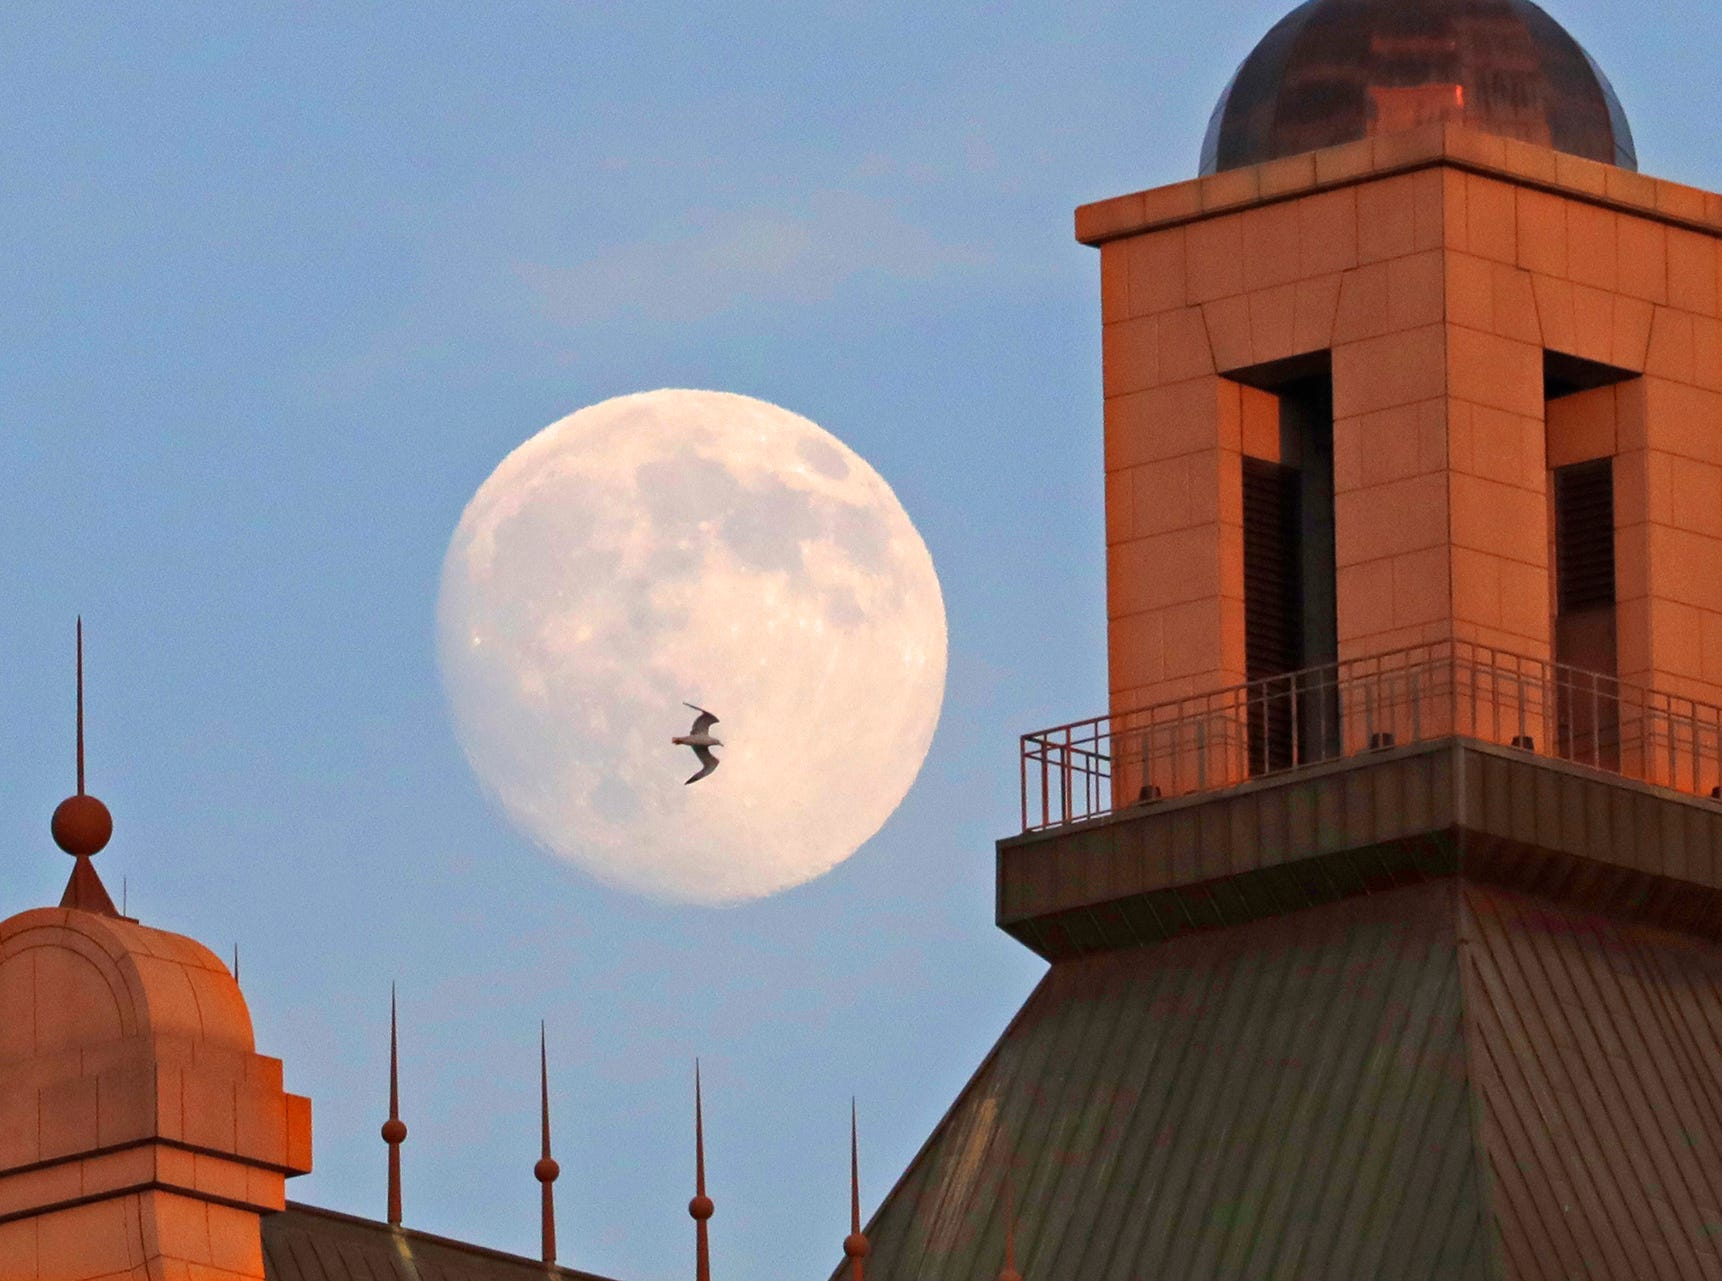 "A gull flies past a nearly full moon rising above the 35-floor 100 East Wisconsin building in Milwaukee  July 17, 2016. The moon was completely full on July 19, 2016. According to the Old Farmers Almanac, the full moon on the 19th is referred to as the ""Full Buck Moon"" as bucks begin to grow antlers at this time. This full moon was also known as the thunder moon, because thunderstorms are so frequent during this month."